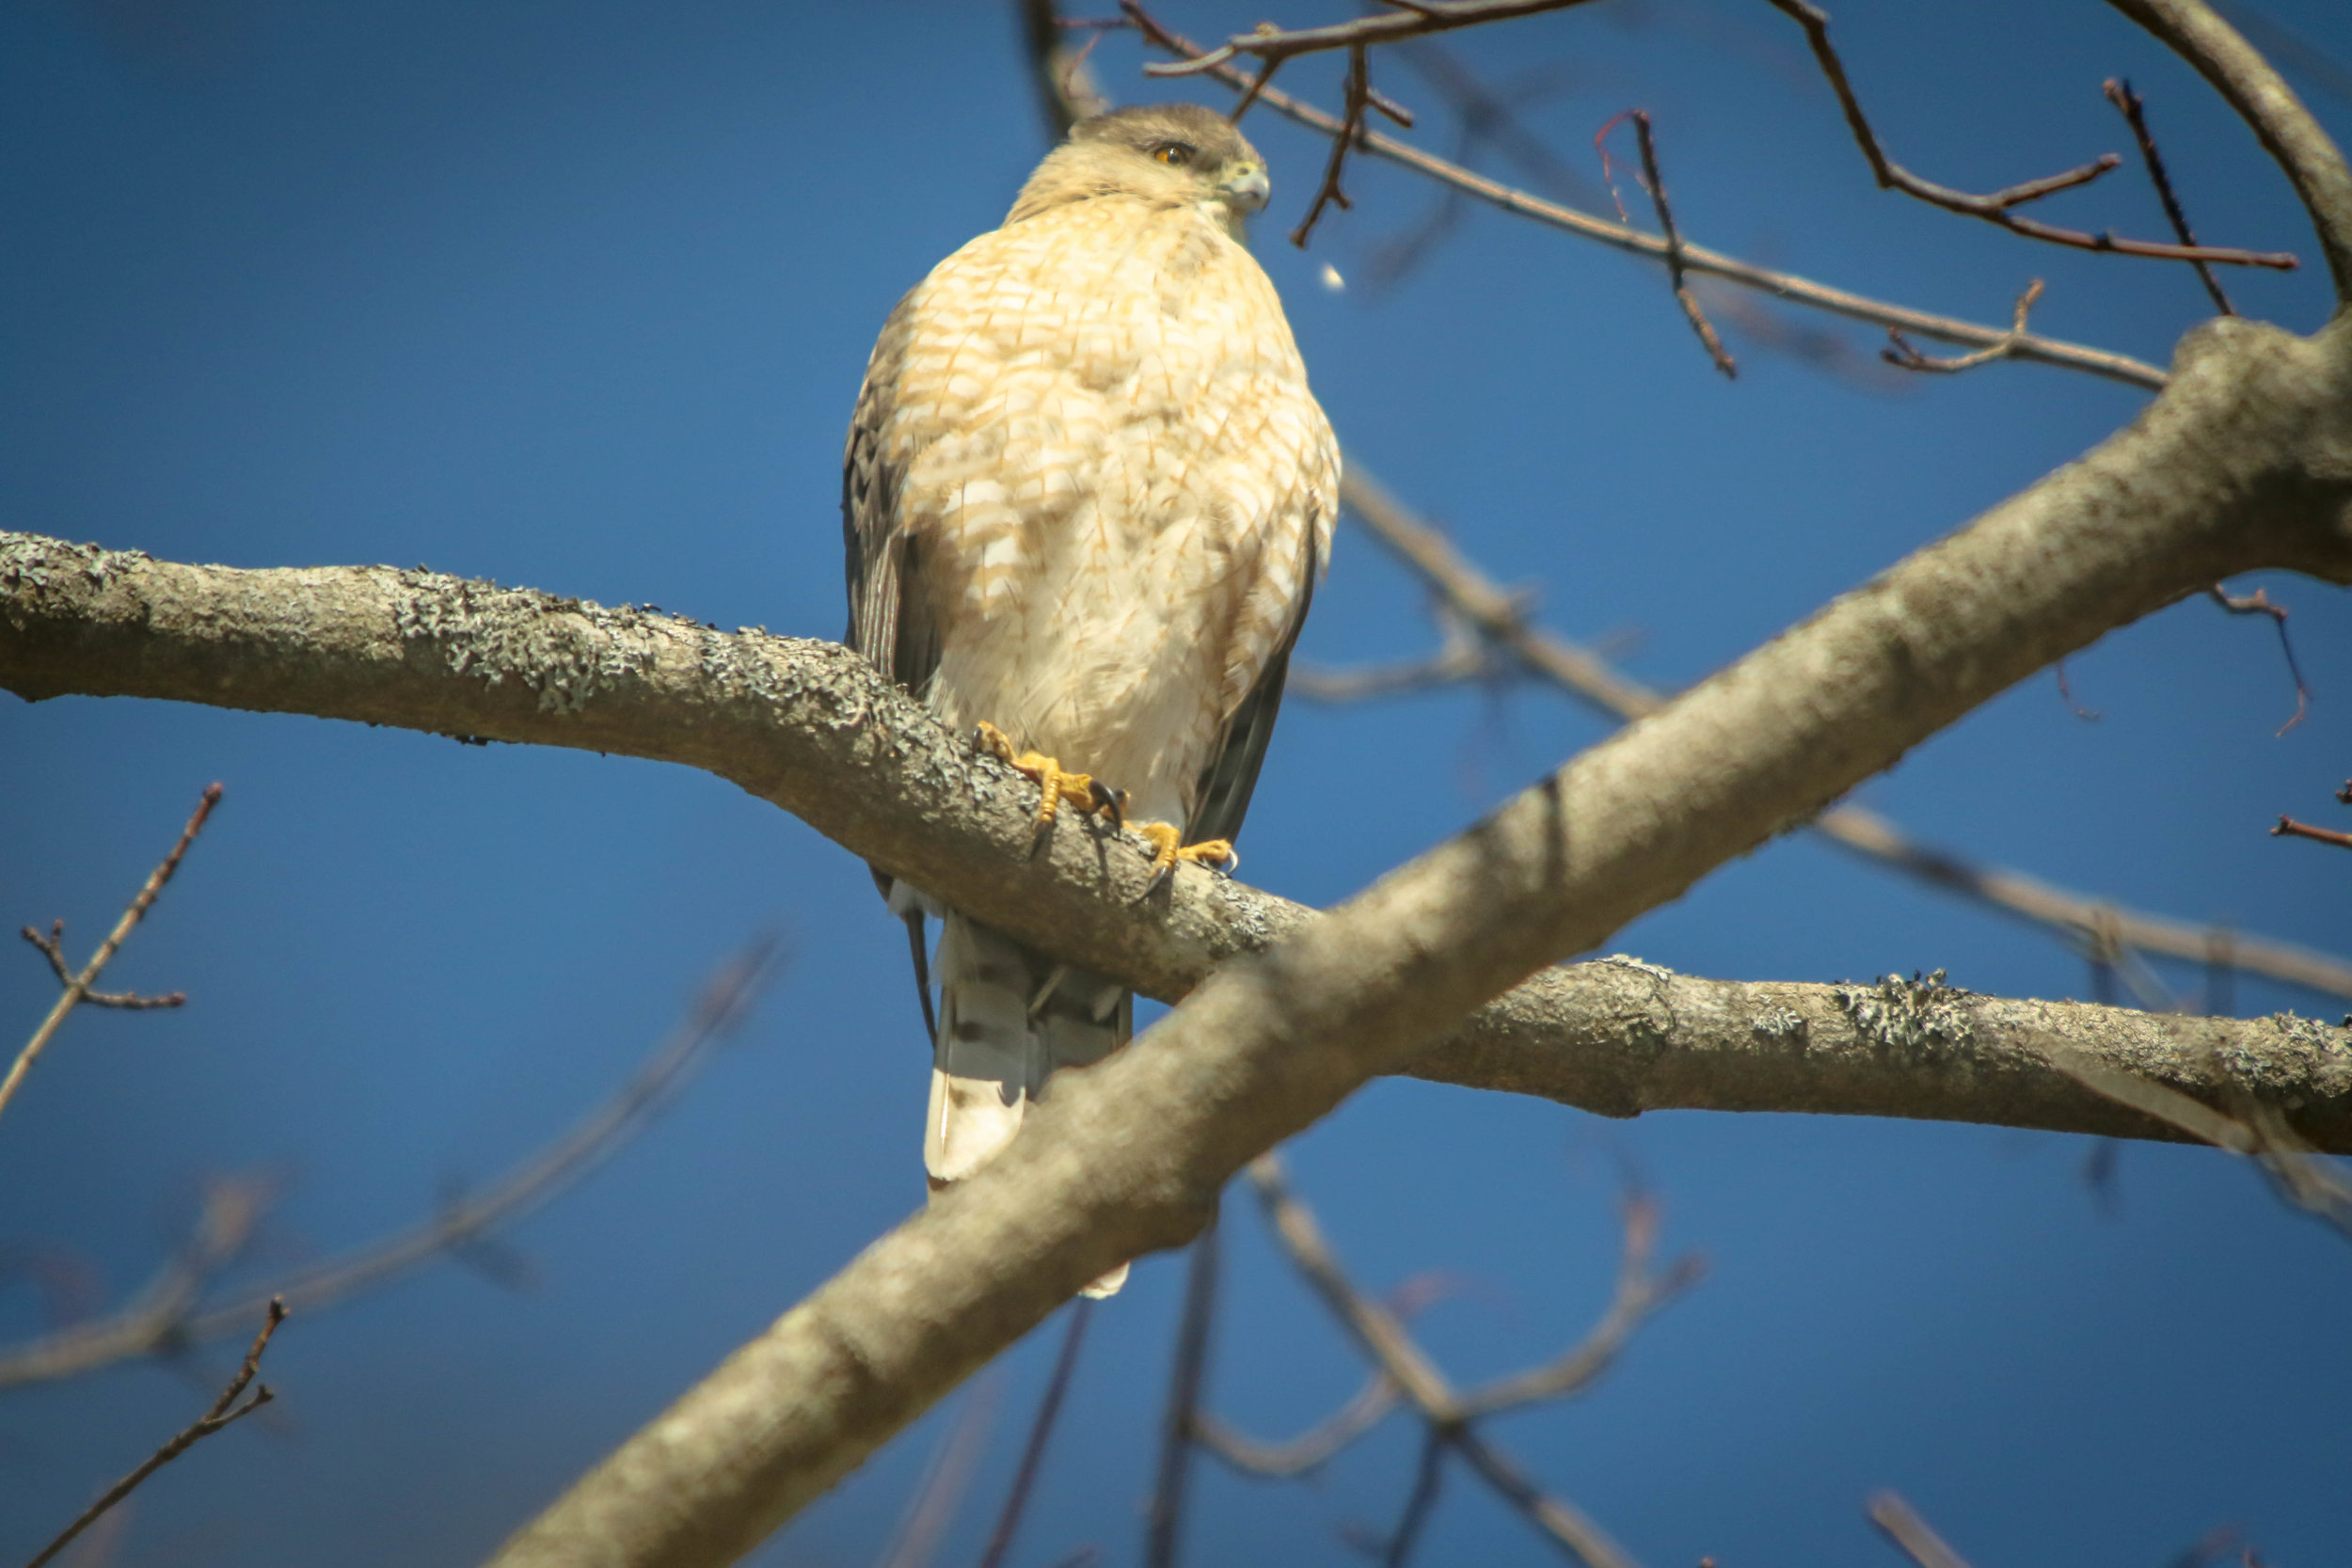 This was the first sign.  The Hawks have been missing all winter.  Now this one is back...in my yard.